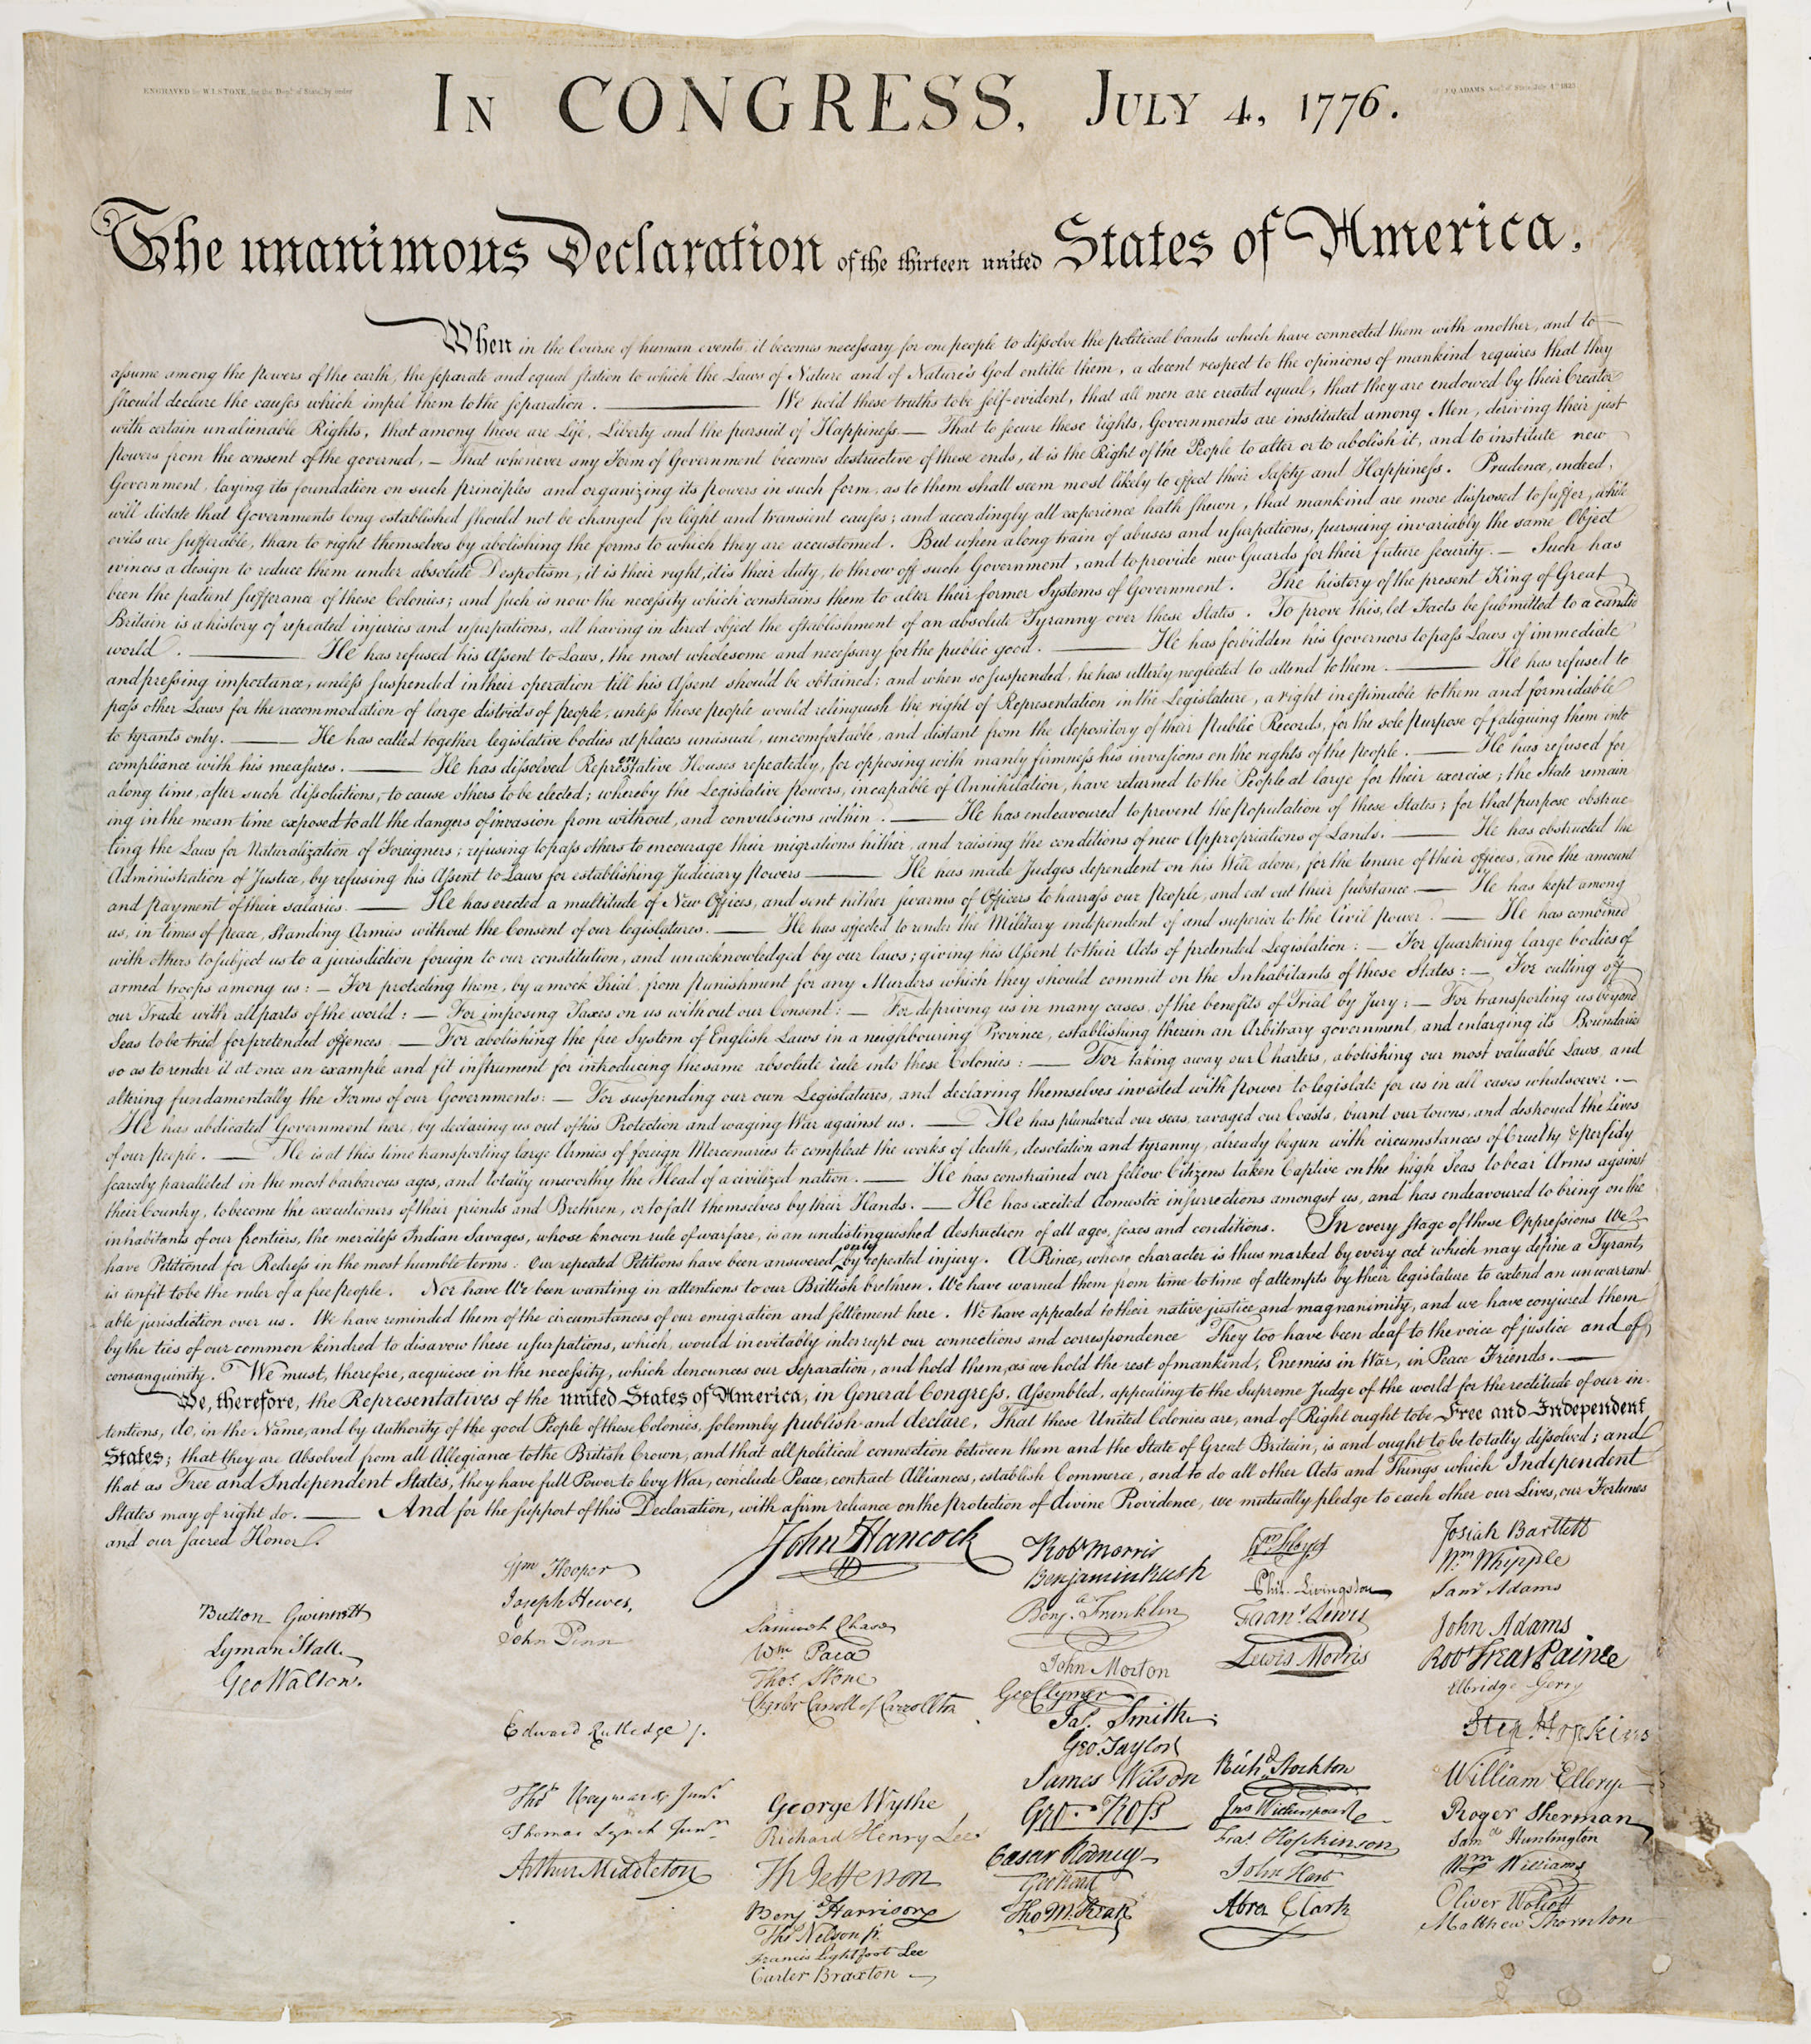 [DECLARATION OF INDEPENDENCE].